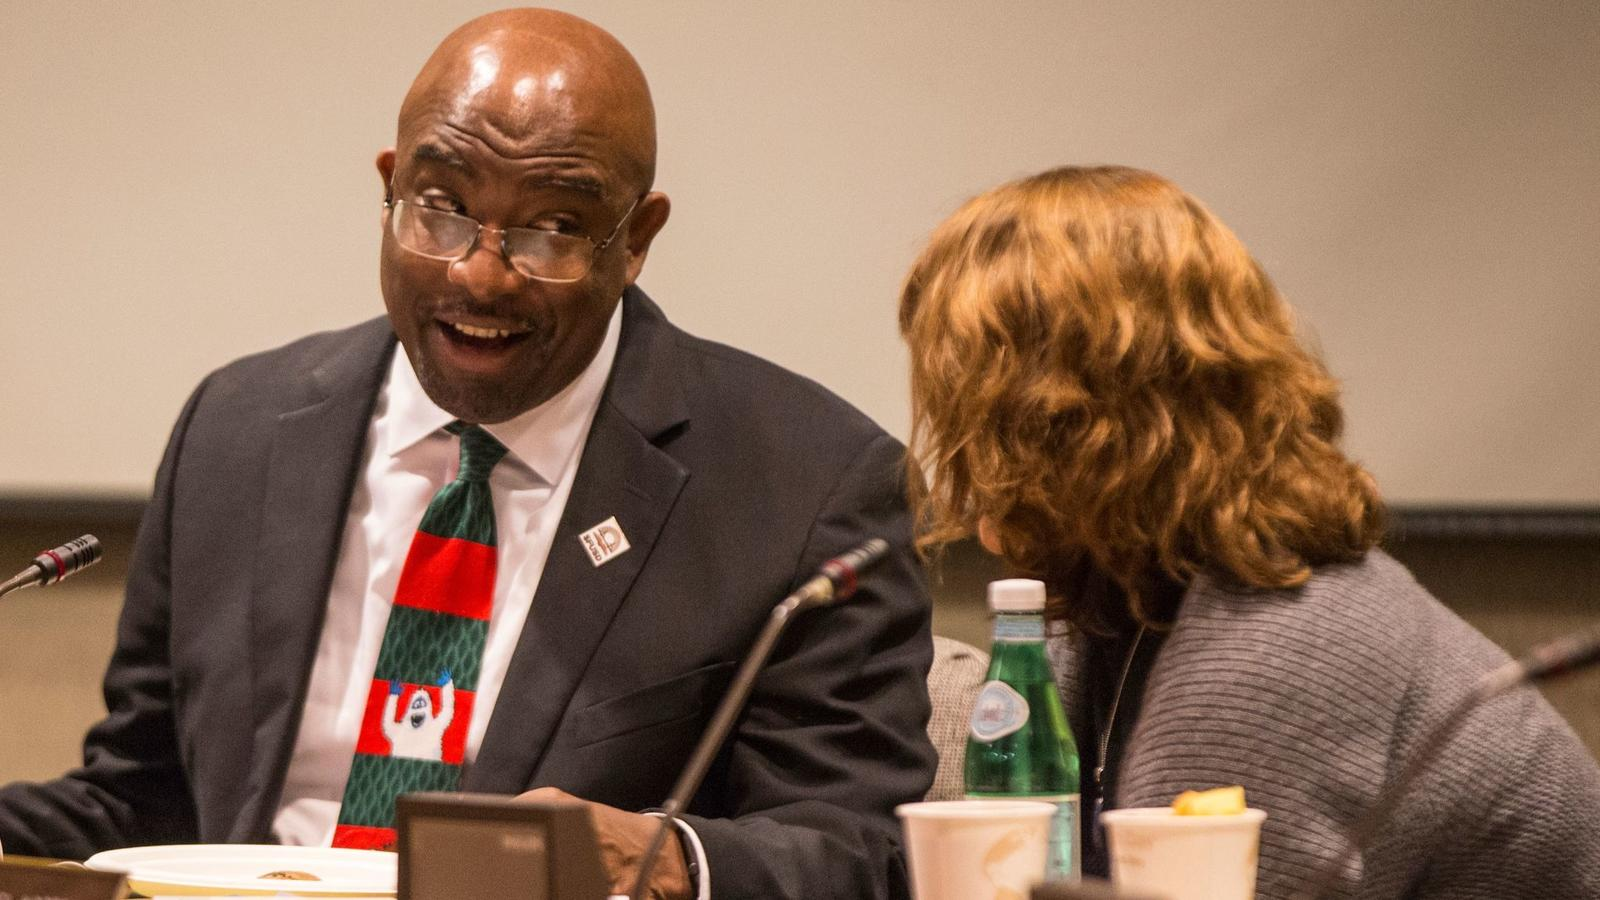 San Francisco Unified School District Supt. Vincent Matthews gives a presentation on African American achievement and leadership. (Jessica Christian / San Francisco Examiner)